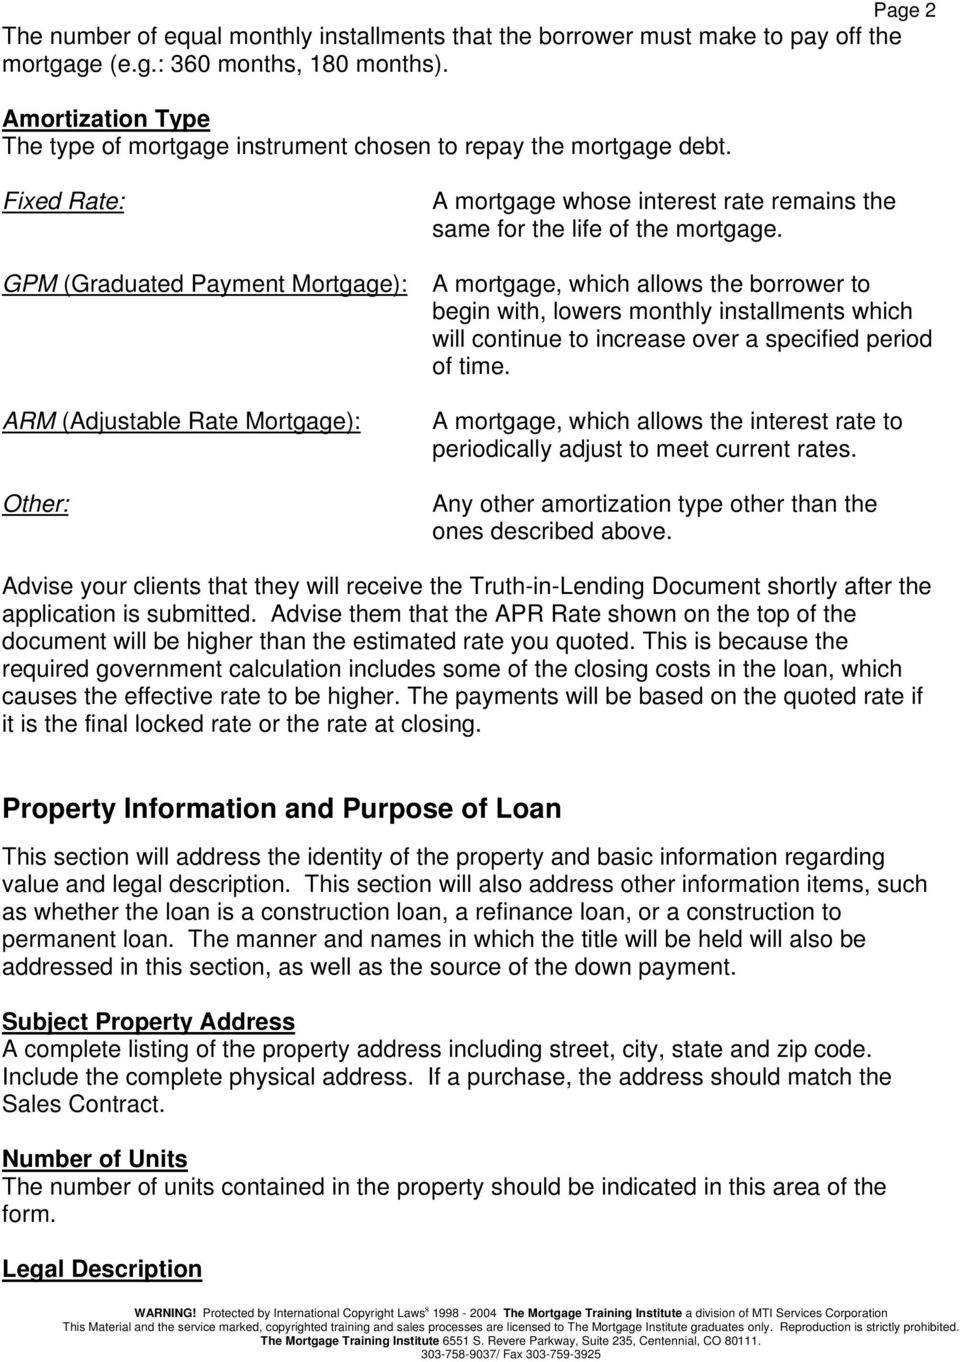 Fixed Rate: GPM (Graduated Payment Mortgage): ARM (Adjustable Rate Mortgage): Other: A mortgage whose interest rate remains the same for the life of the mortgage.